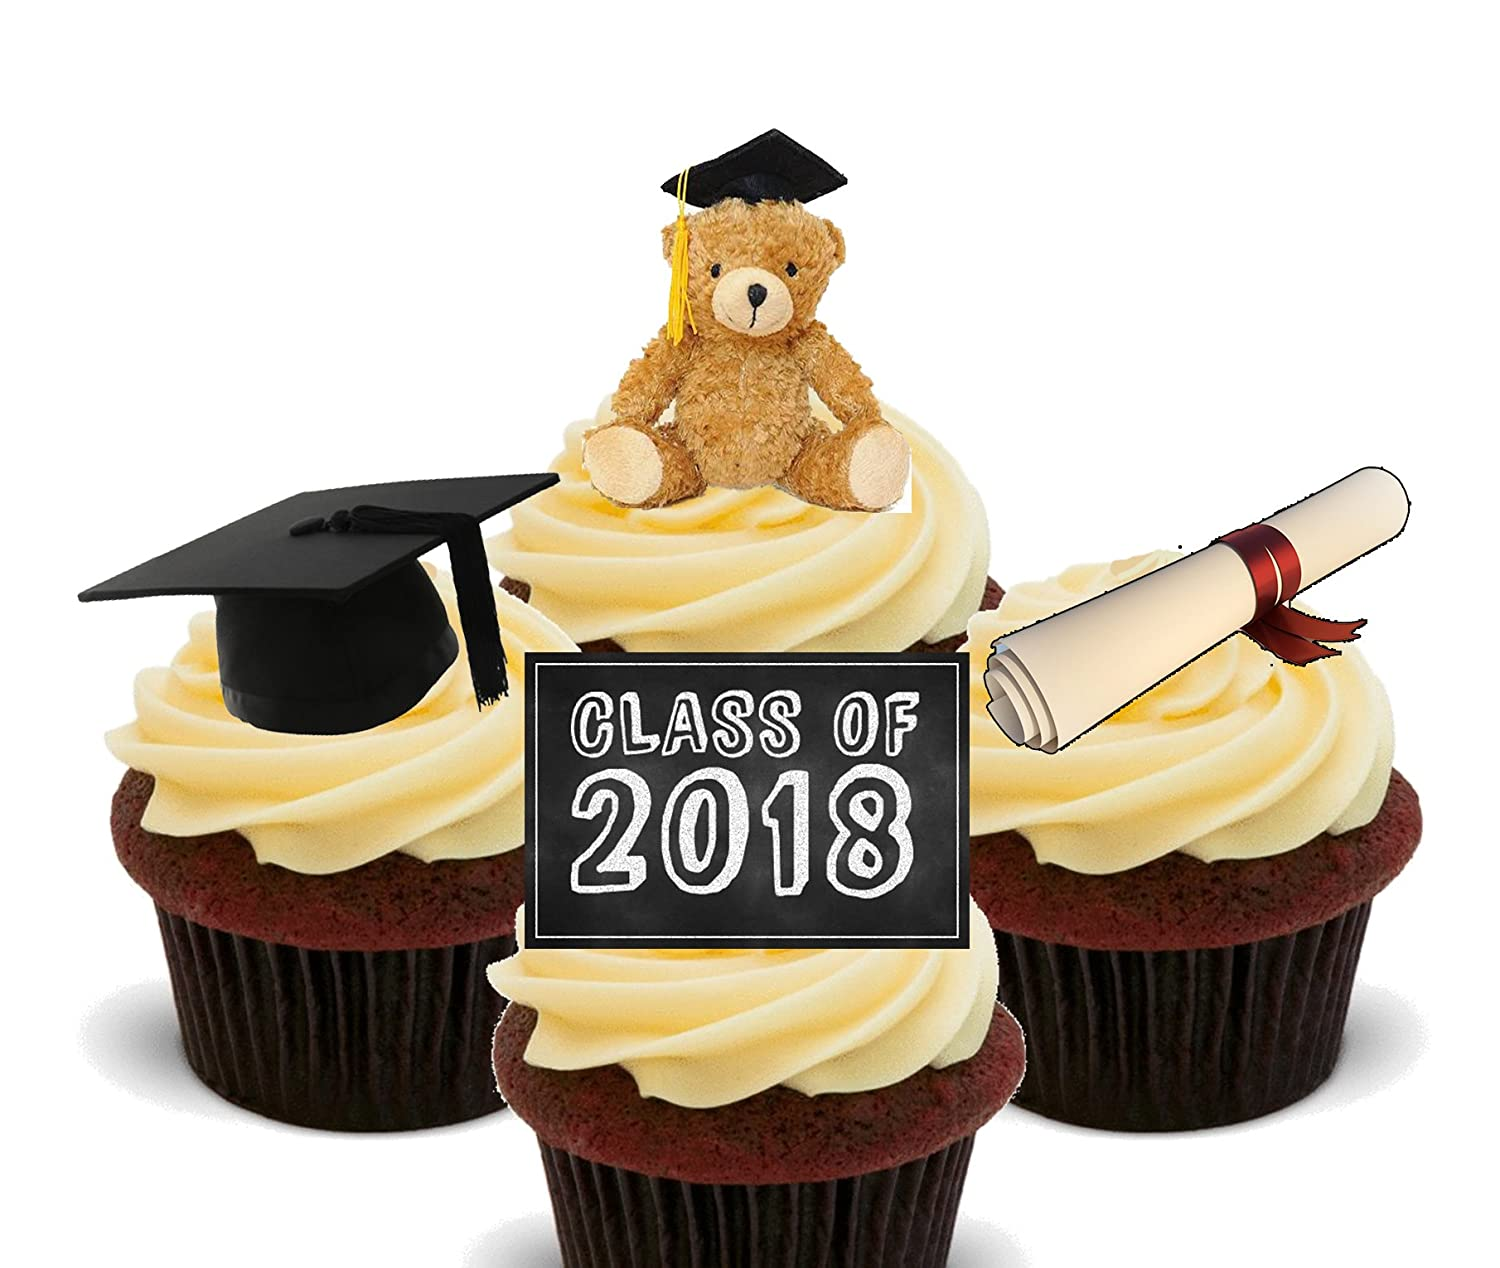 Class of 2018 Graduation Edible Cupcake Toppers - Stand-up Wafer ...